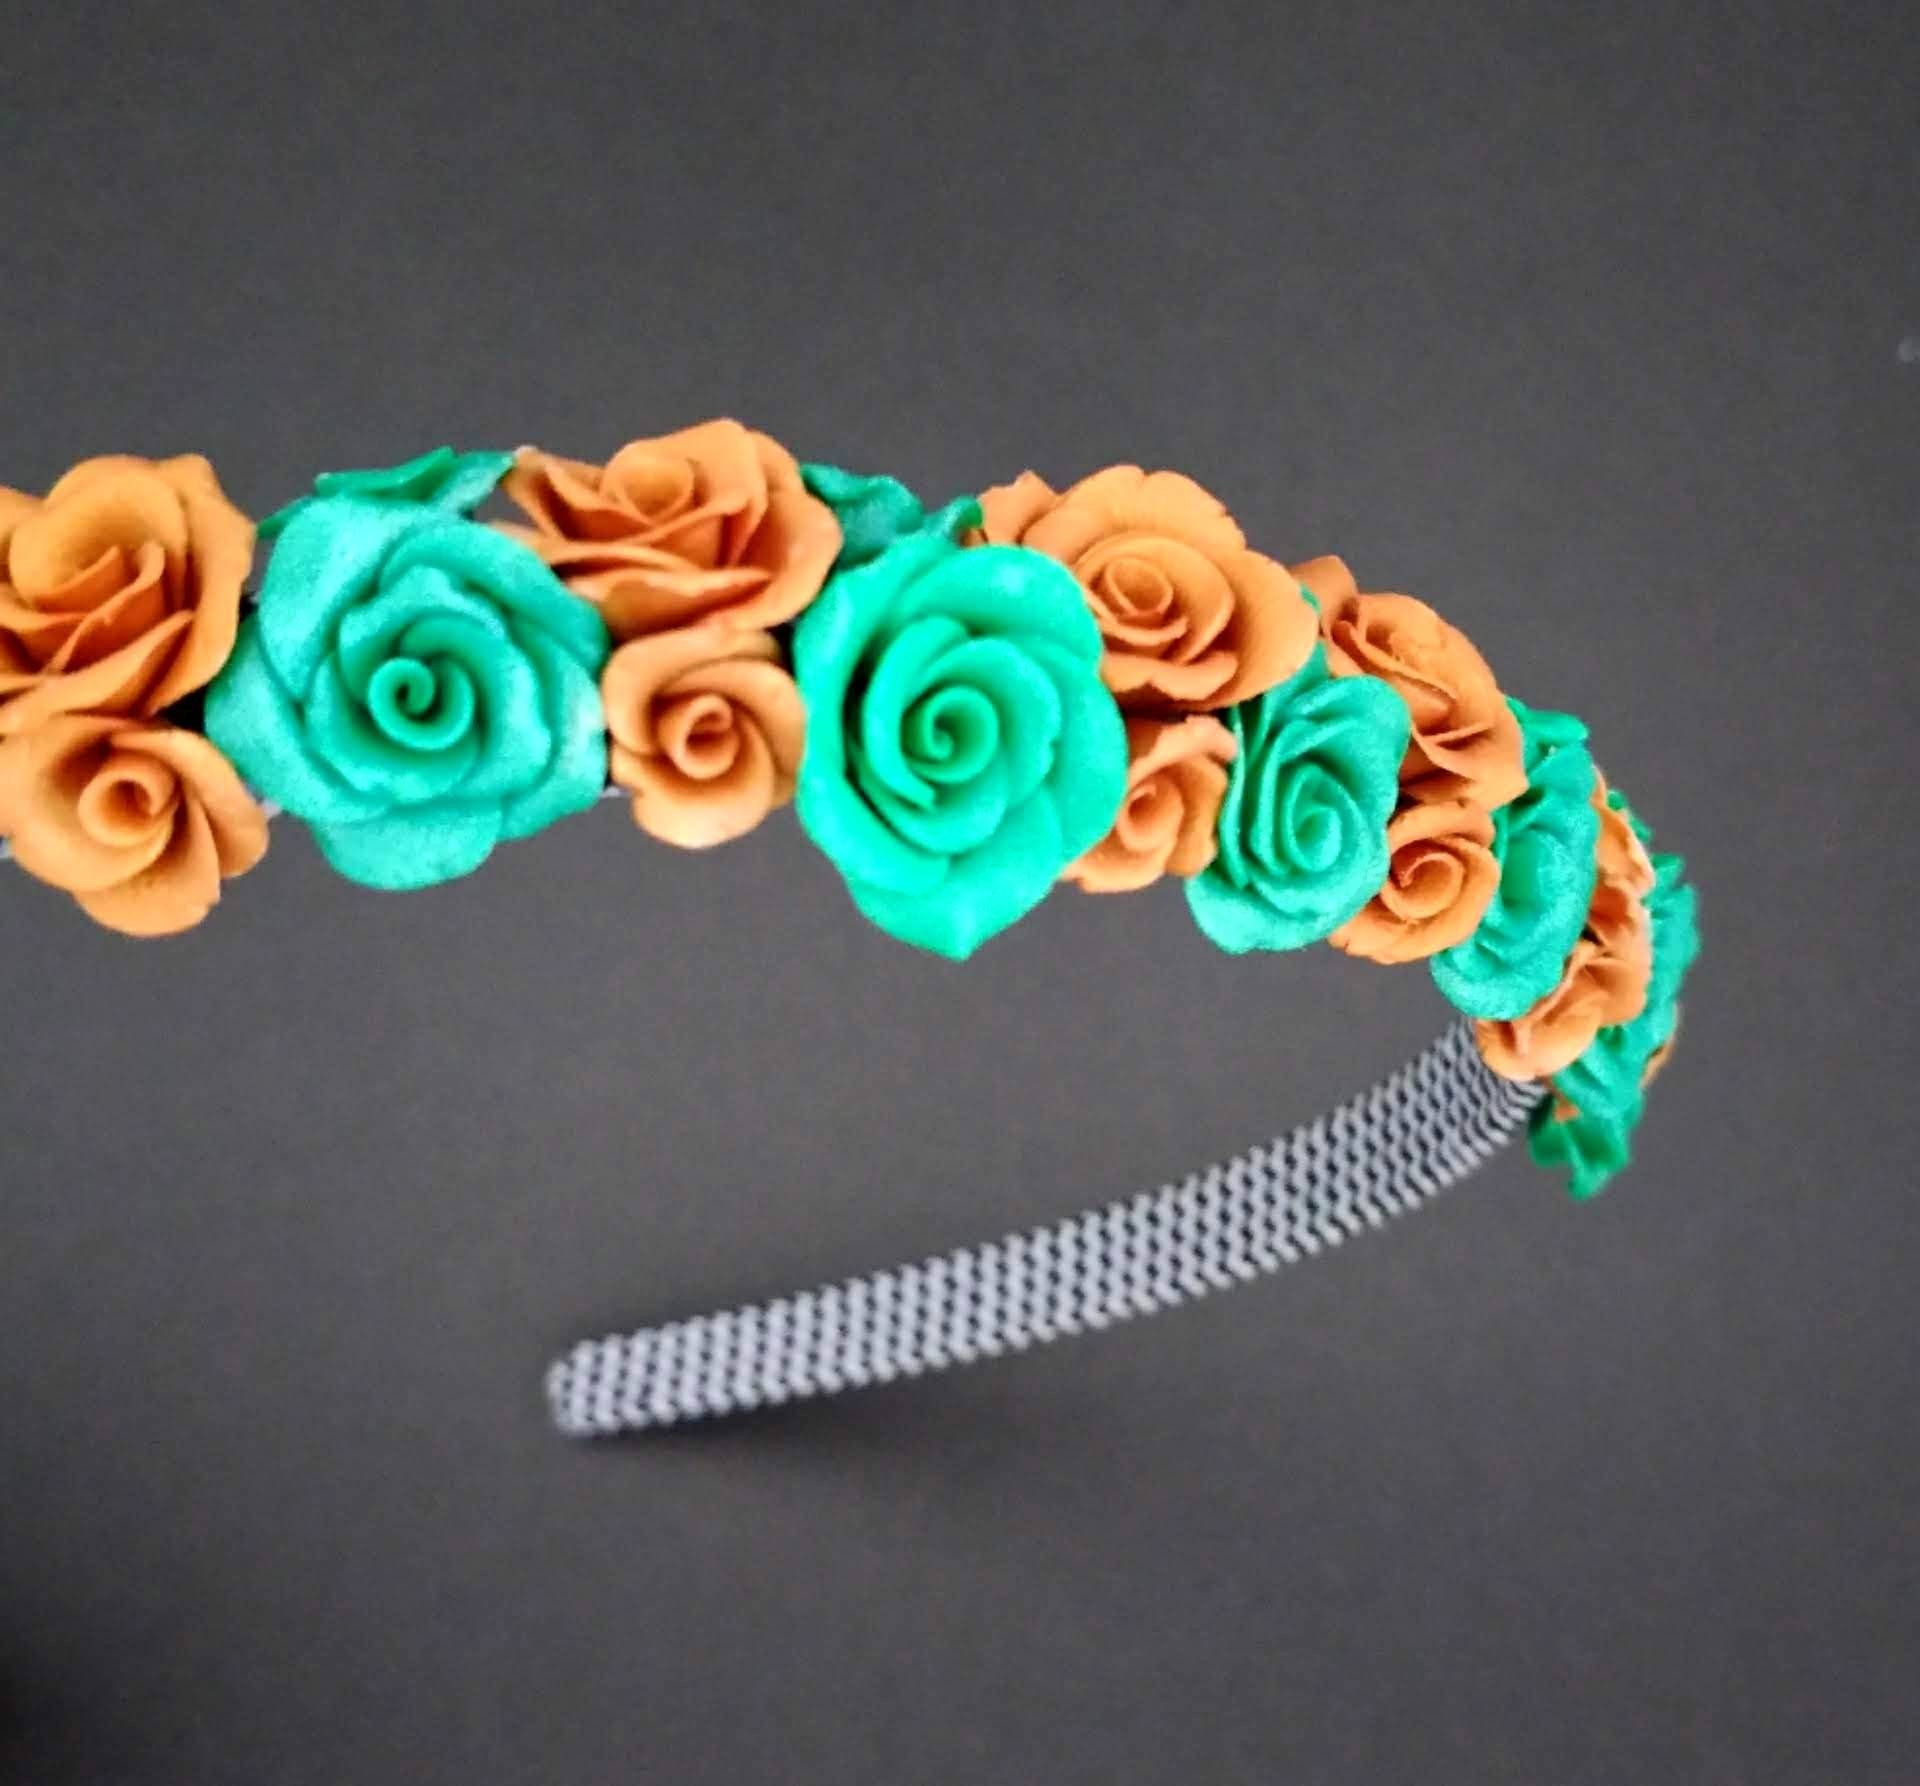 Peacock green gold tiny flower hair band kids hair accessories handmade polymer clay #kidshairaccessories